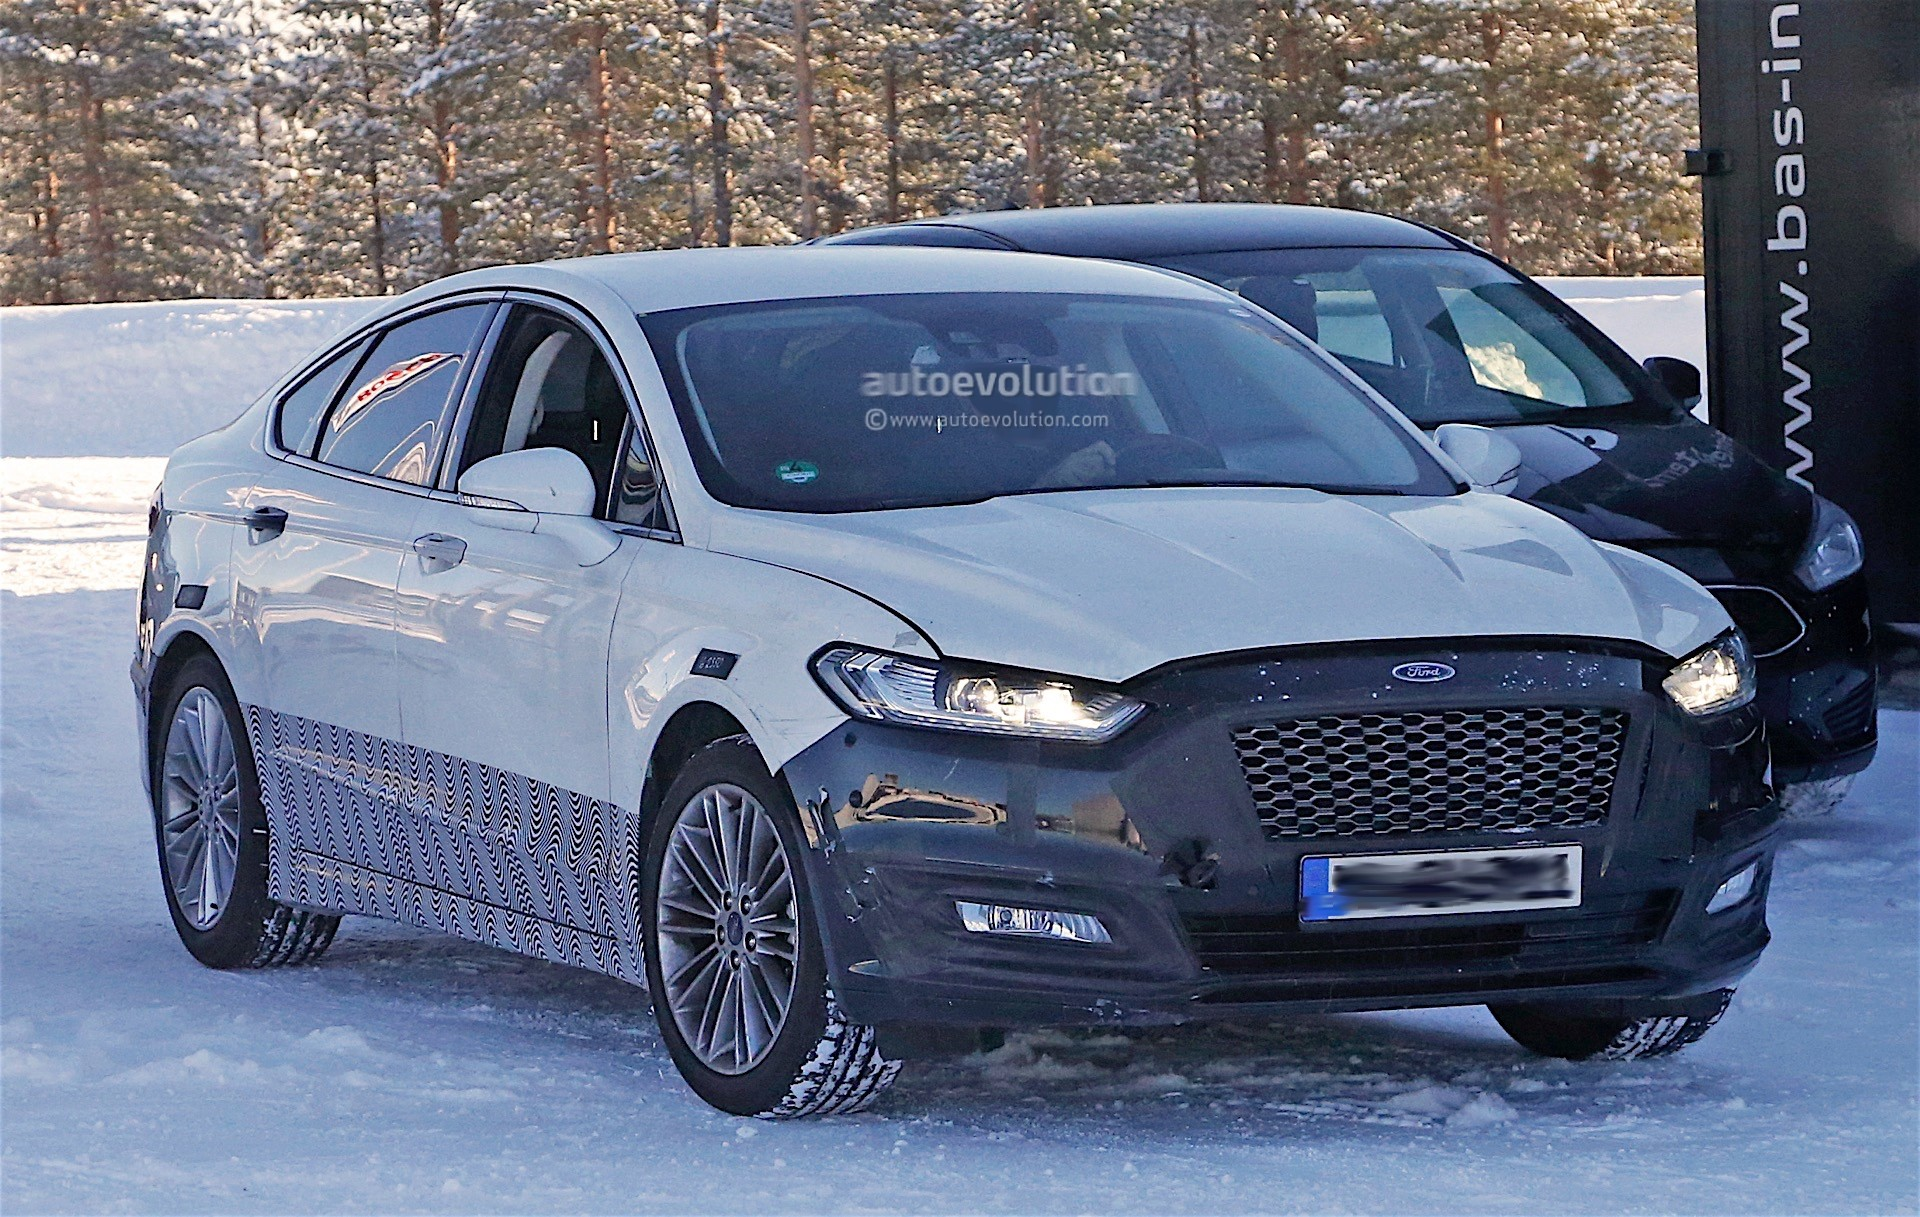 2017 Ford Mondeo Facelift Spyshots Reveal Refreshed Lights and Bumpers - autoevolution